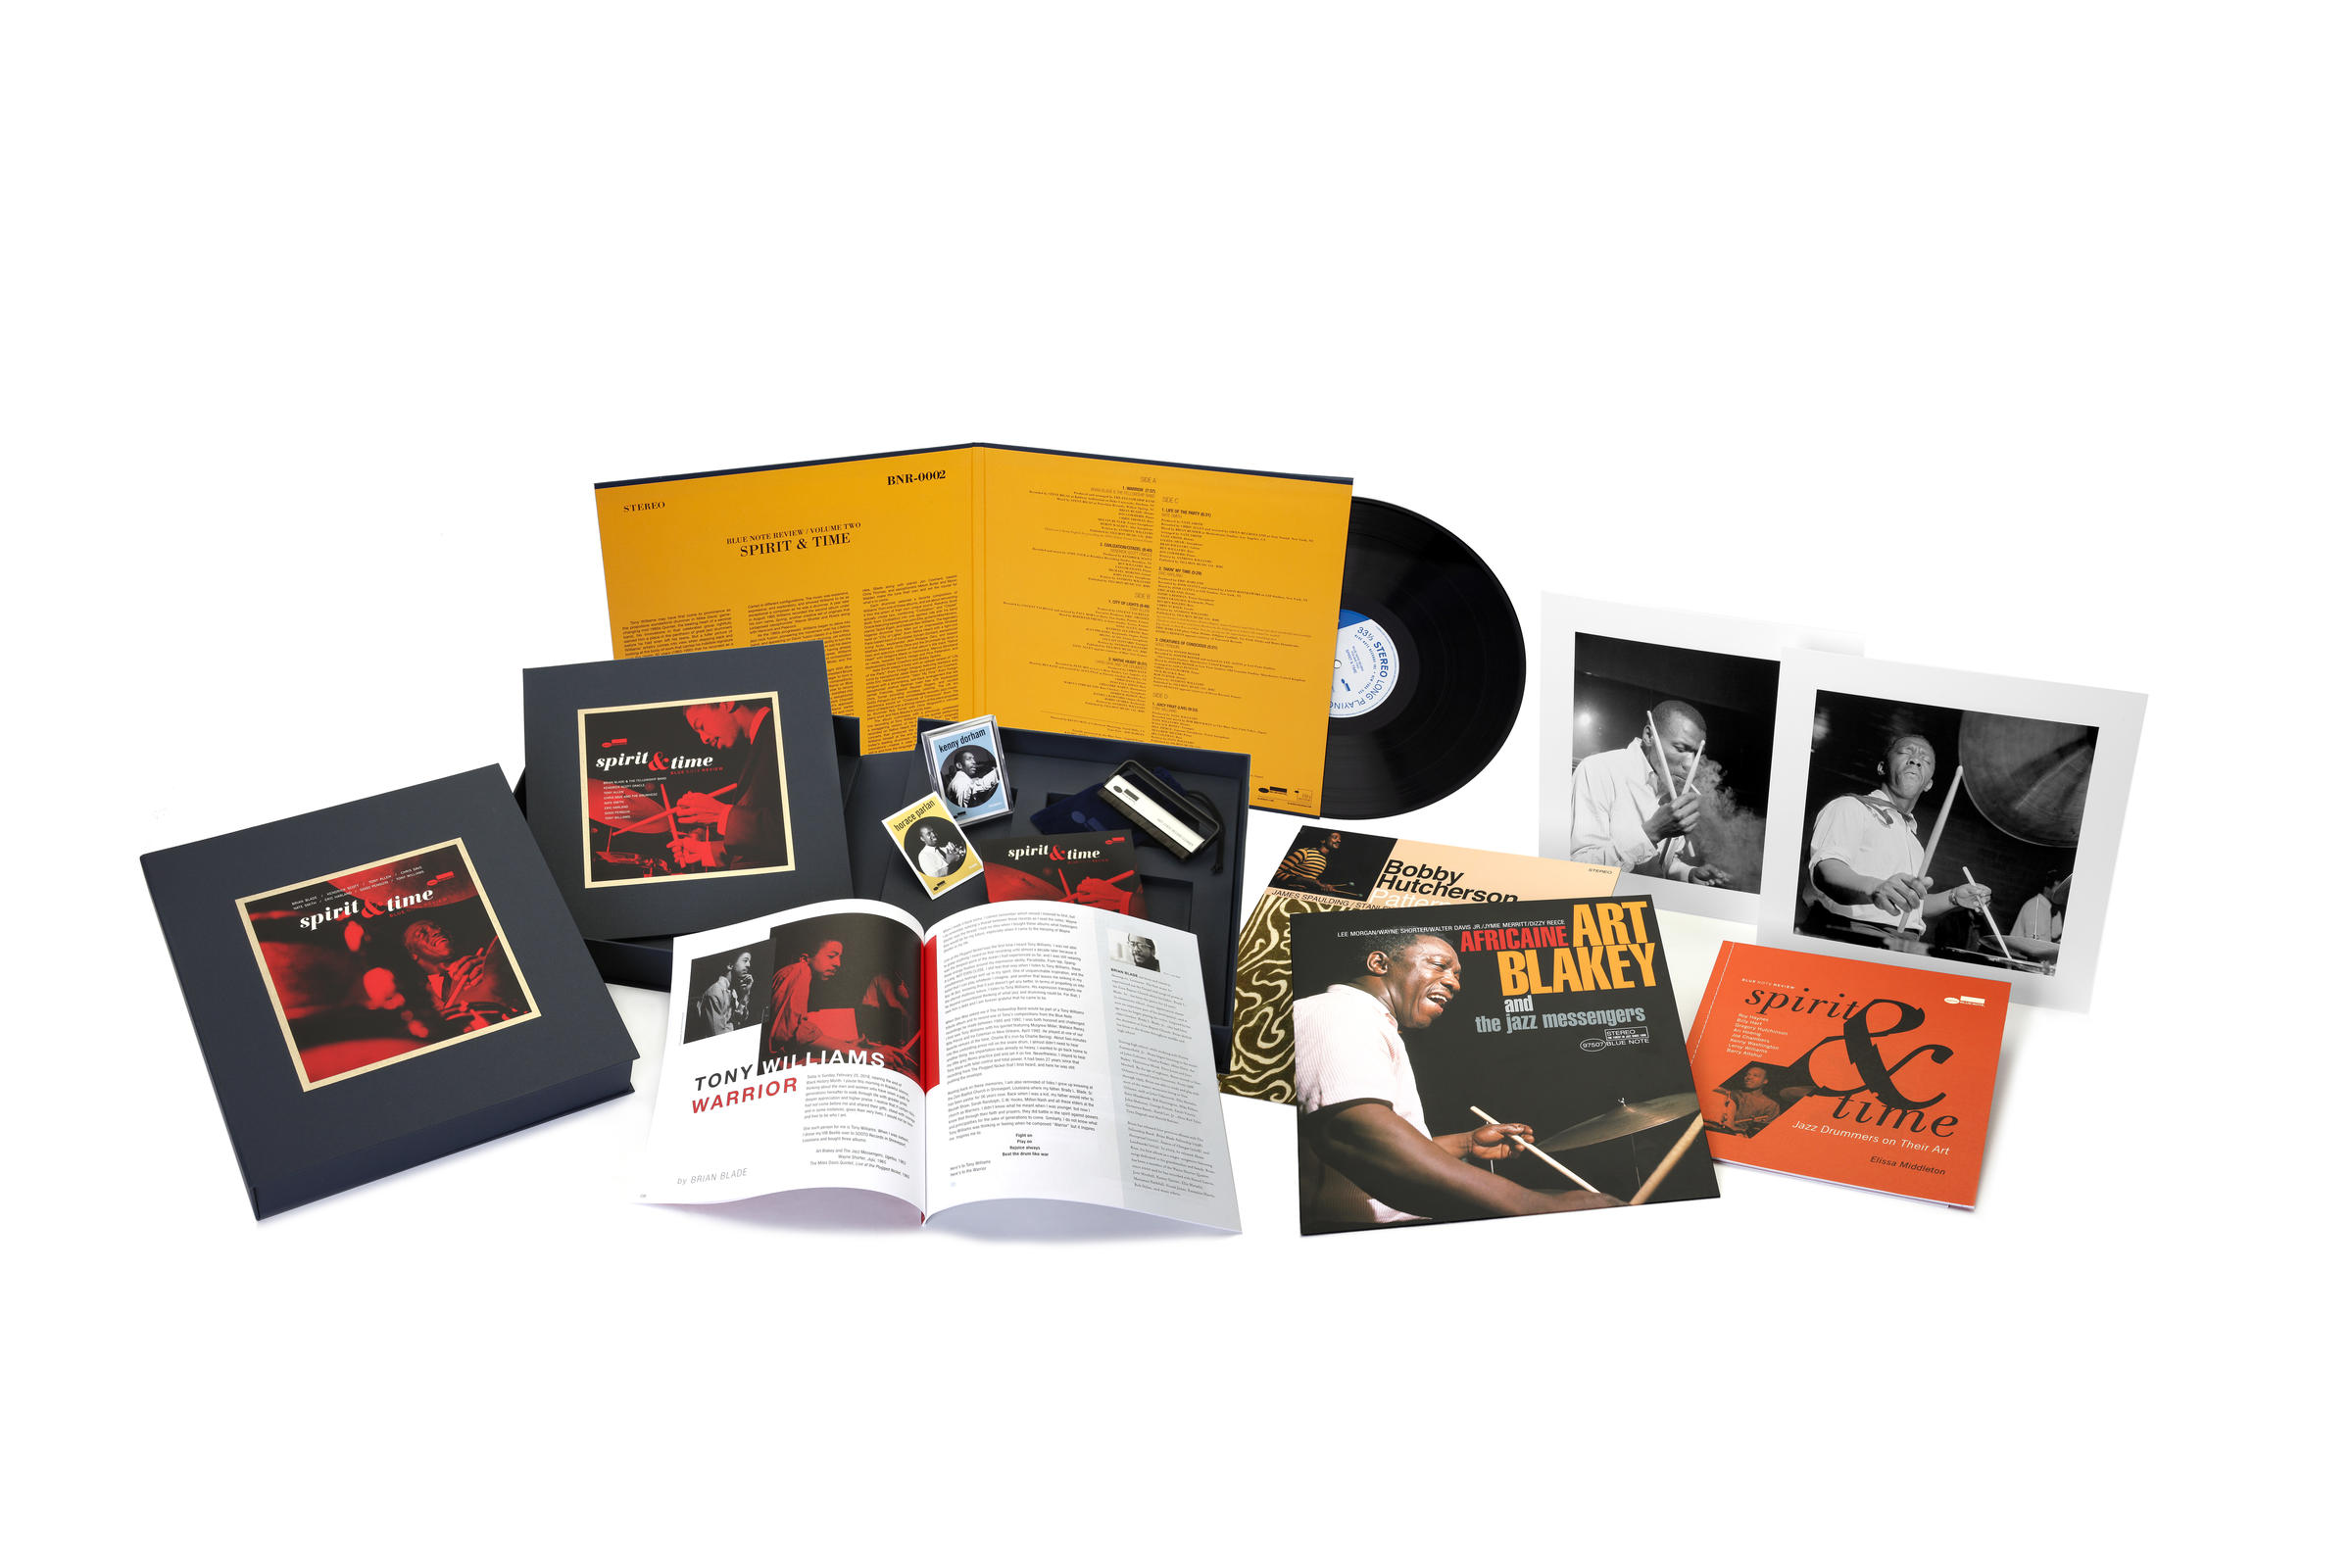 Tony Williams Gets The Deluxe Treatment In Blue Note